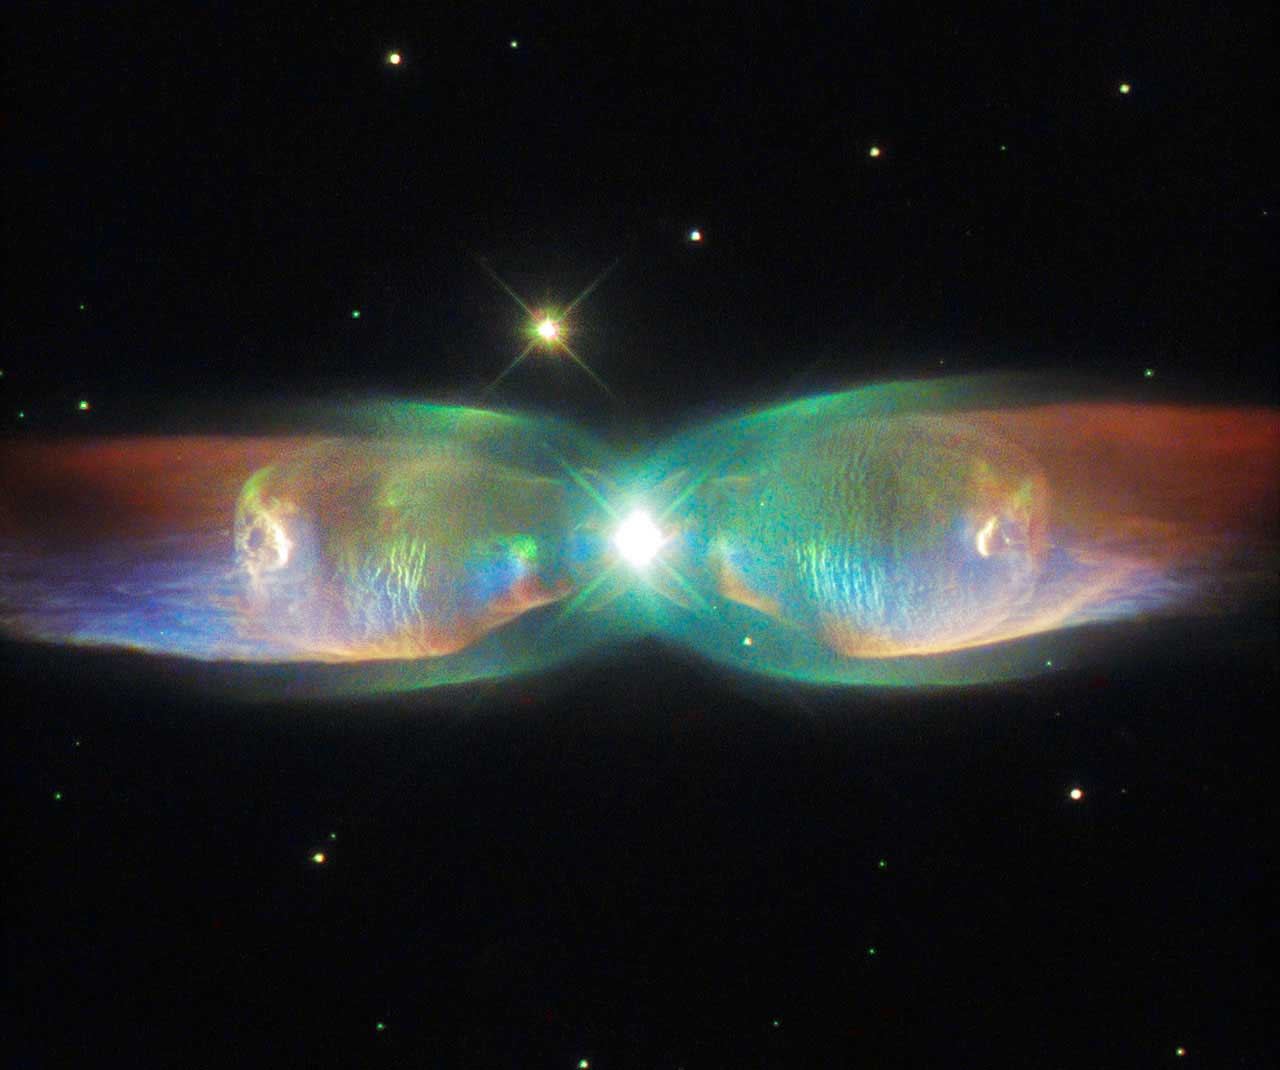 The Twin Jet Nebula, or PN M2-9, is a striking example of a bipolar planetary nebula, formed when the central object is not a single star, but a binary system.  An earlier image of the Twin Jet Nebula using data gathered by Hubble's Wide Field Planetary Camera 2 was released in 1997. This newer version released on Aug. 26, 2015 incorporates more recent observations from the telescope's Space Telescope Imaging Spectrograph.